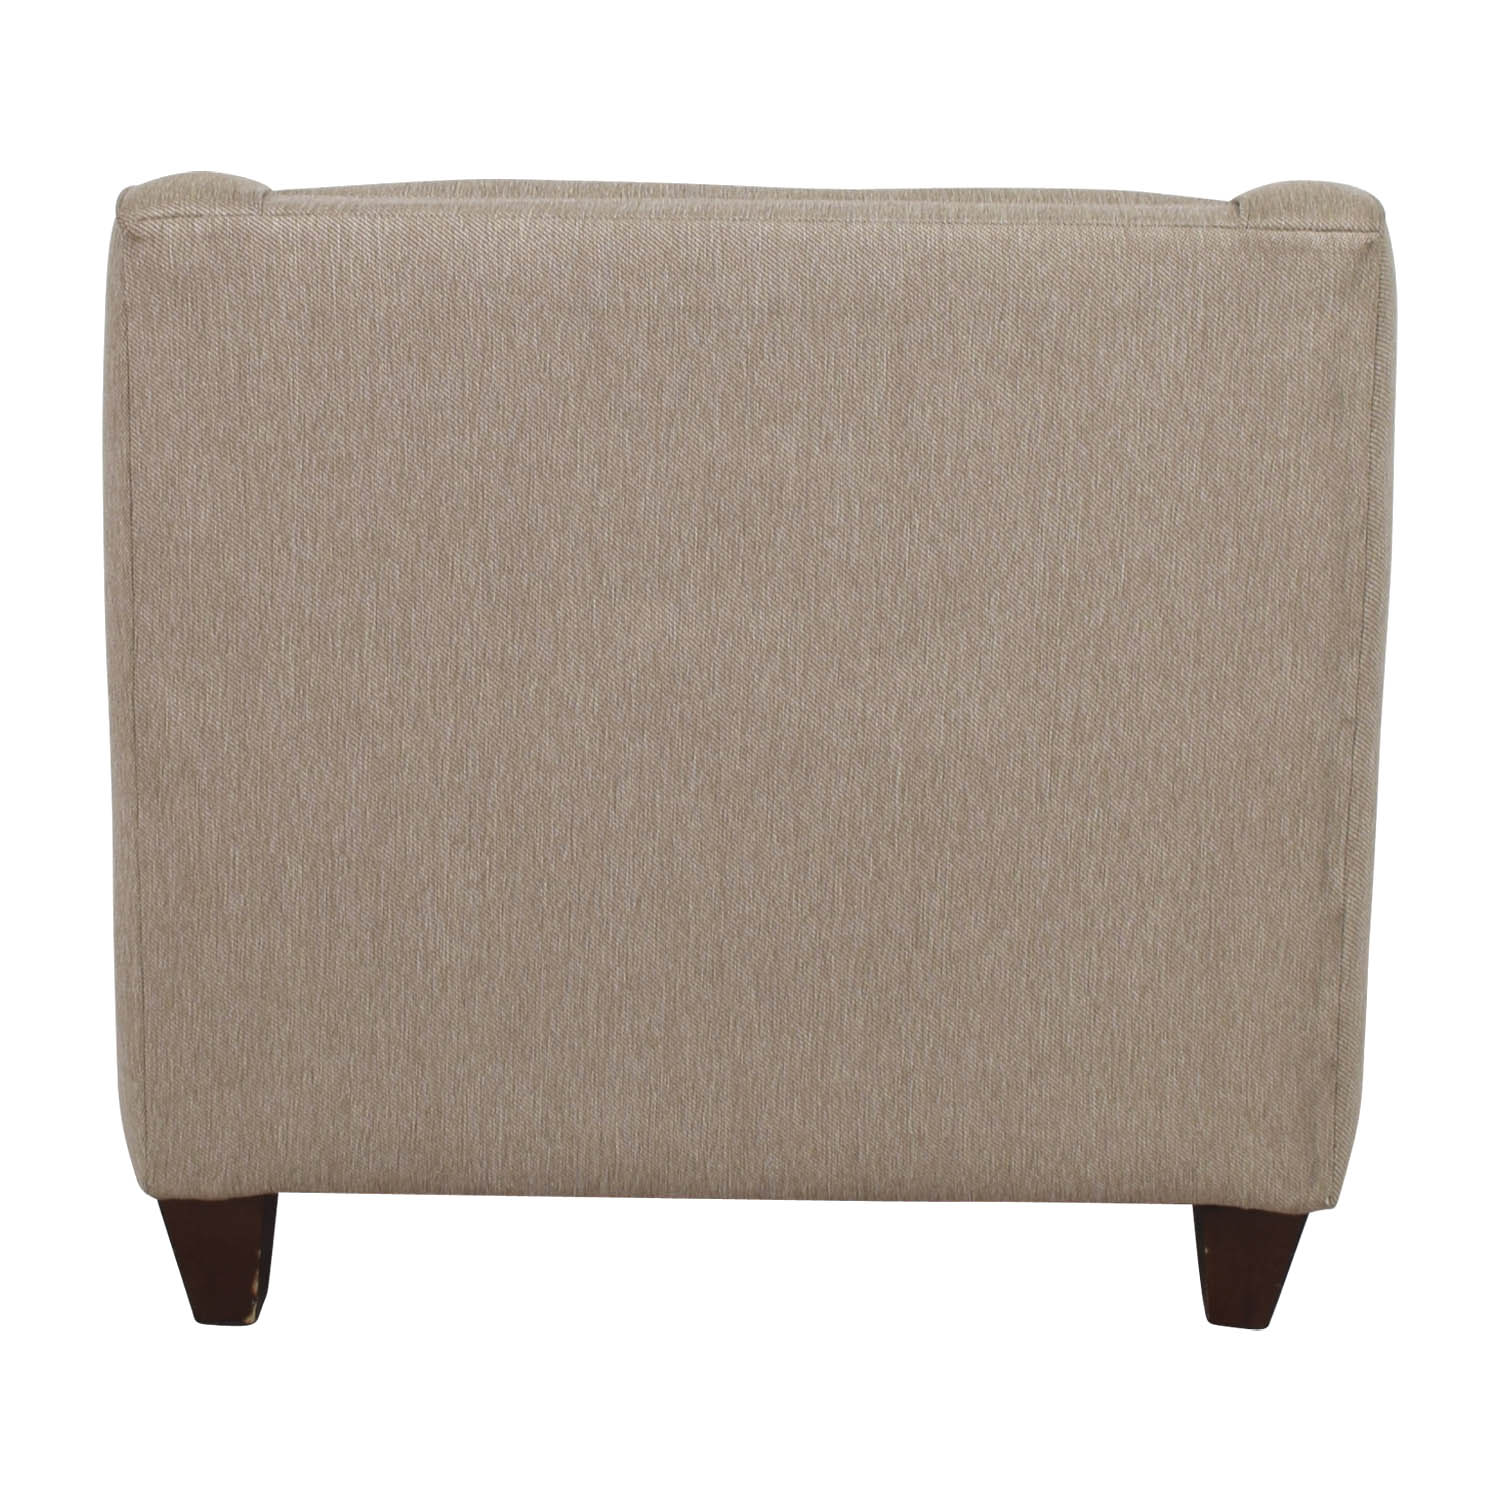 Star Furniture Star Furniture Colton Tufted Chair and Ottoman discount